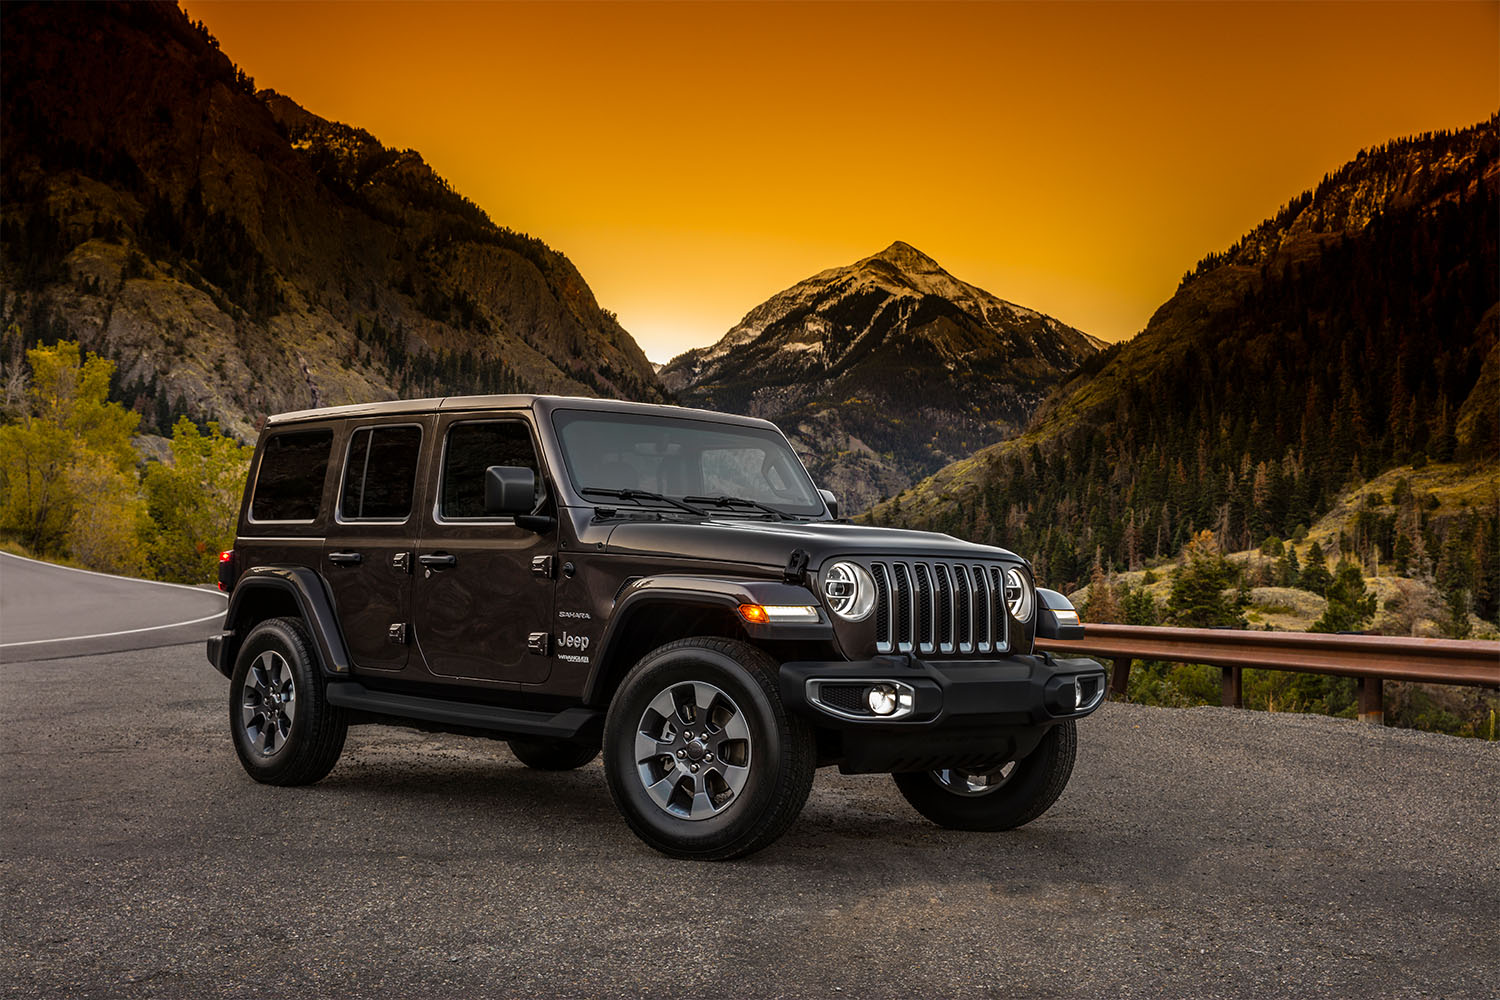 Lease a Jeep in Springfield, NJ